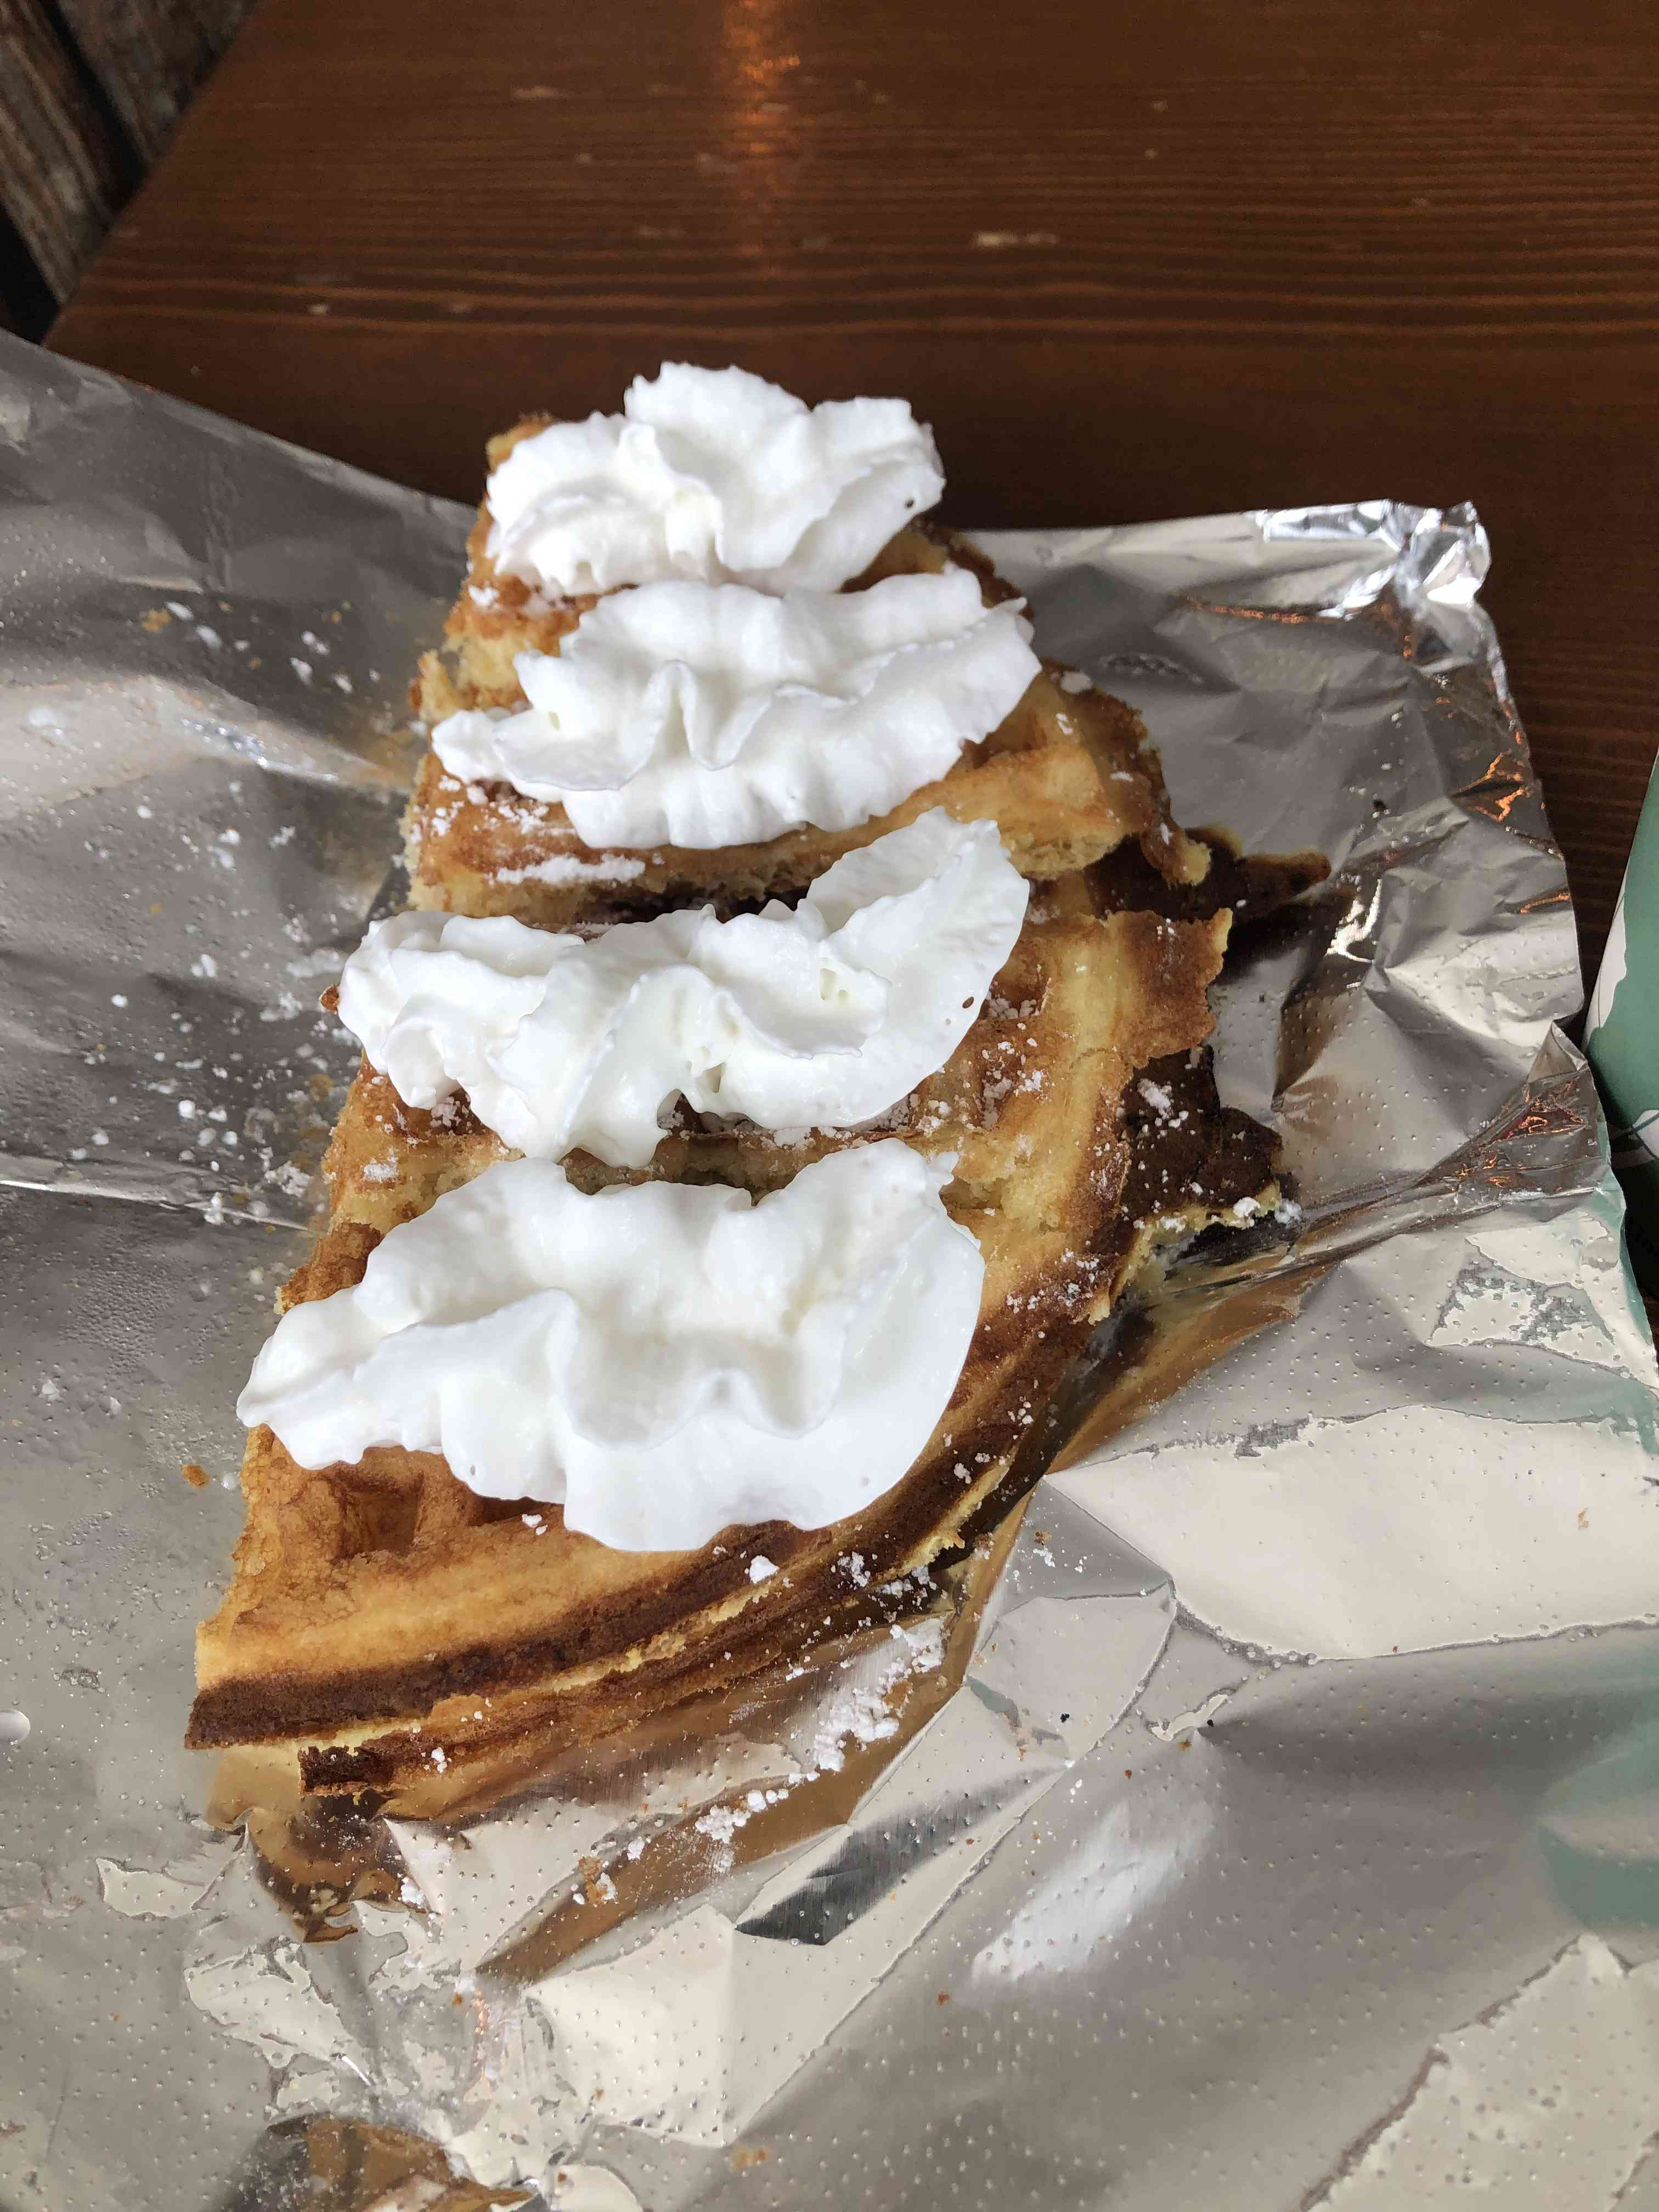 Waffle Folded in hal with four dollops of whipped cream on a sheet of aluminum foil